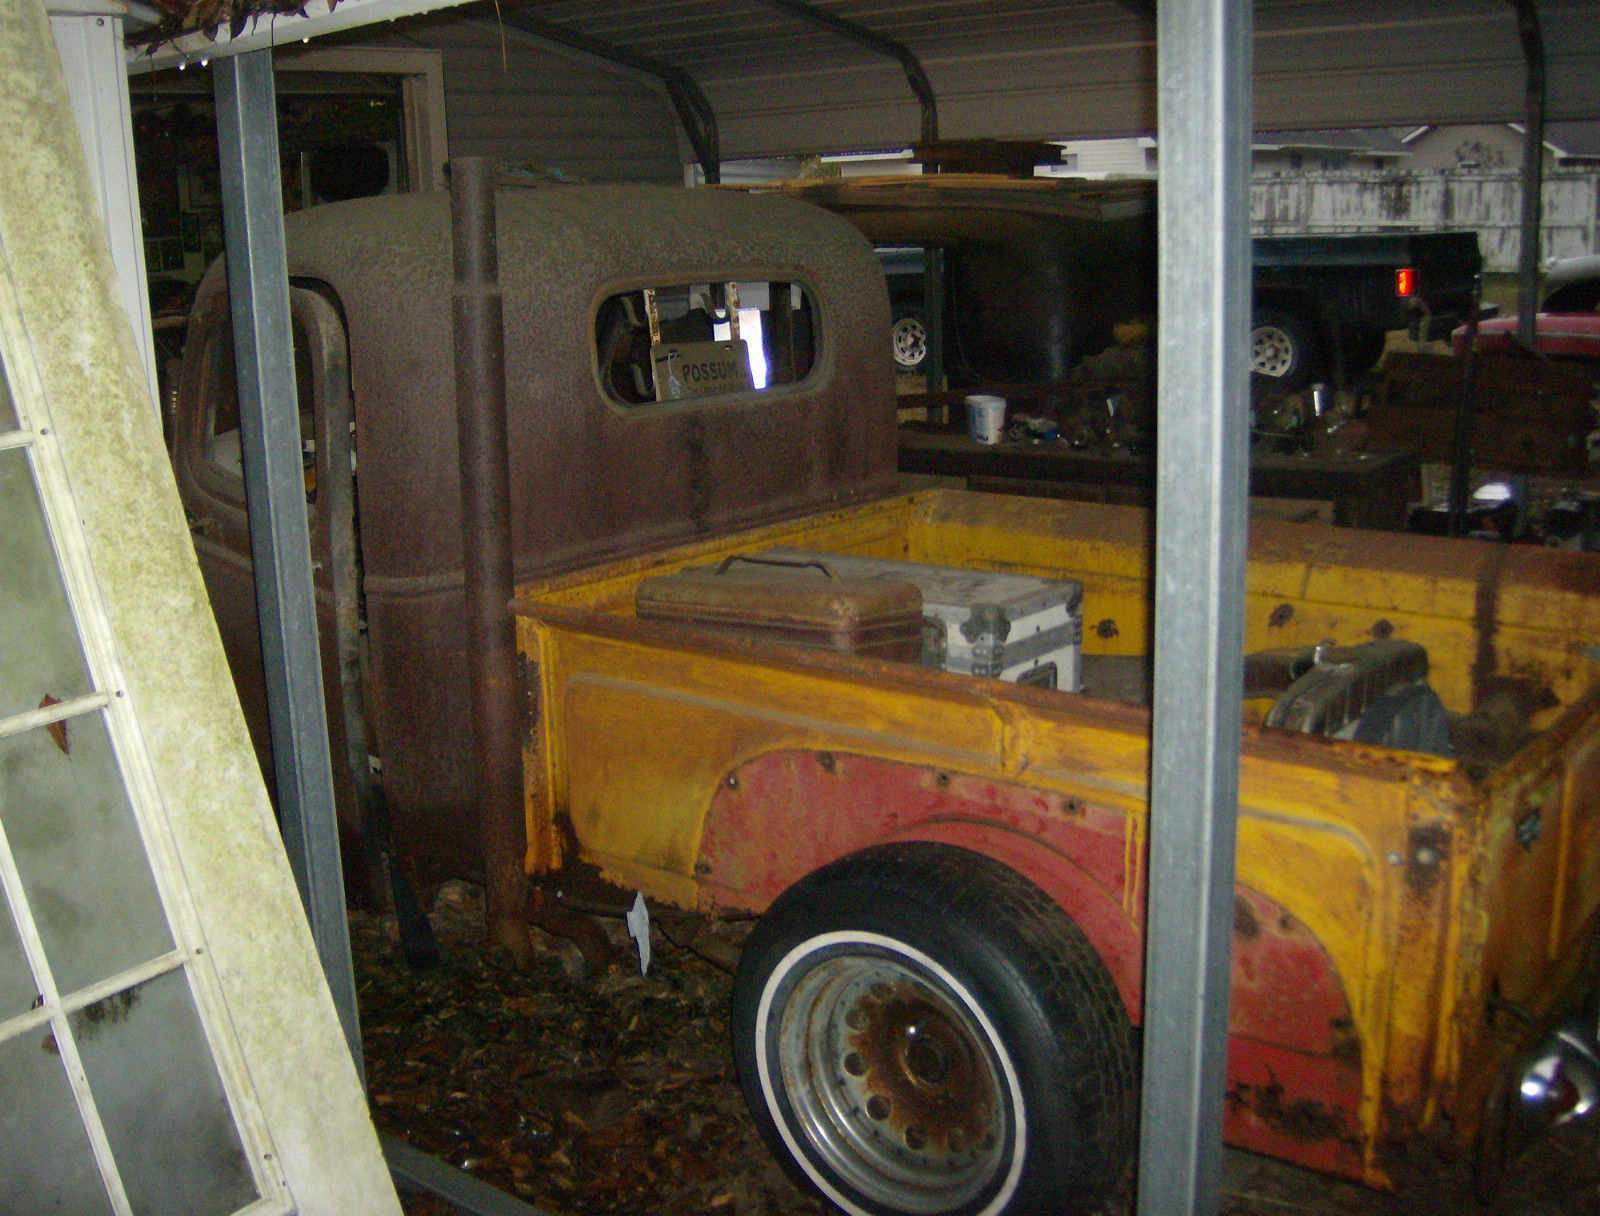 1941 1953 Chevrolet Rat Rod Hot Barn Find Pickup Project 40s 1942 Chevy Truck Patina Prevnext